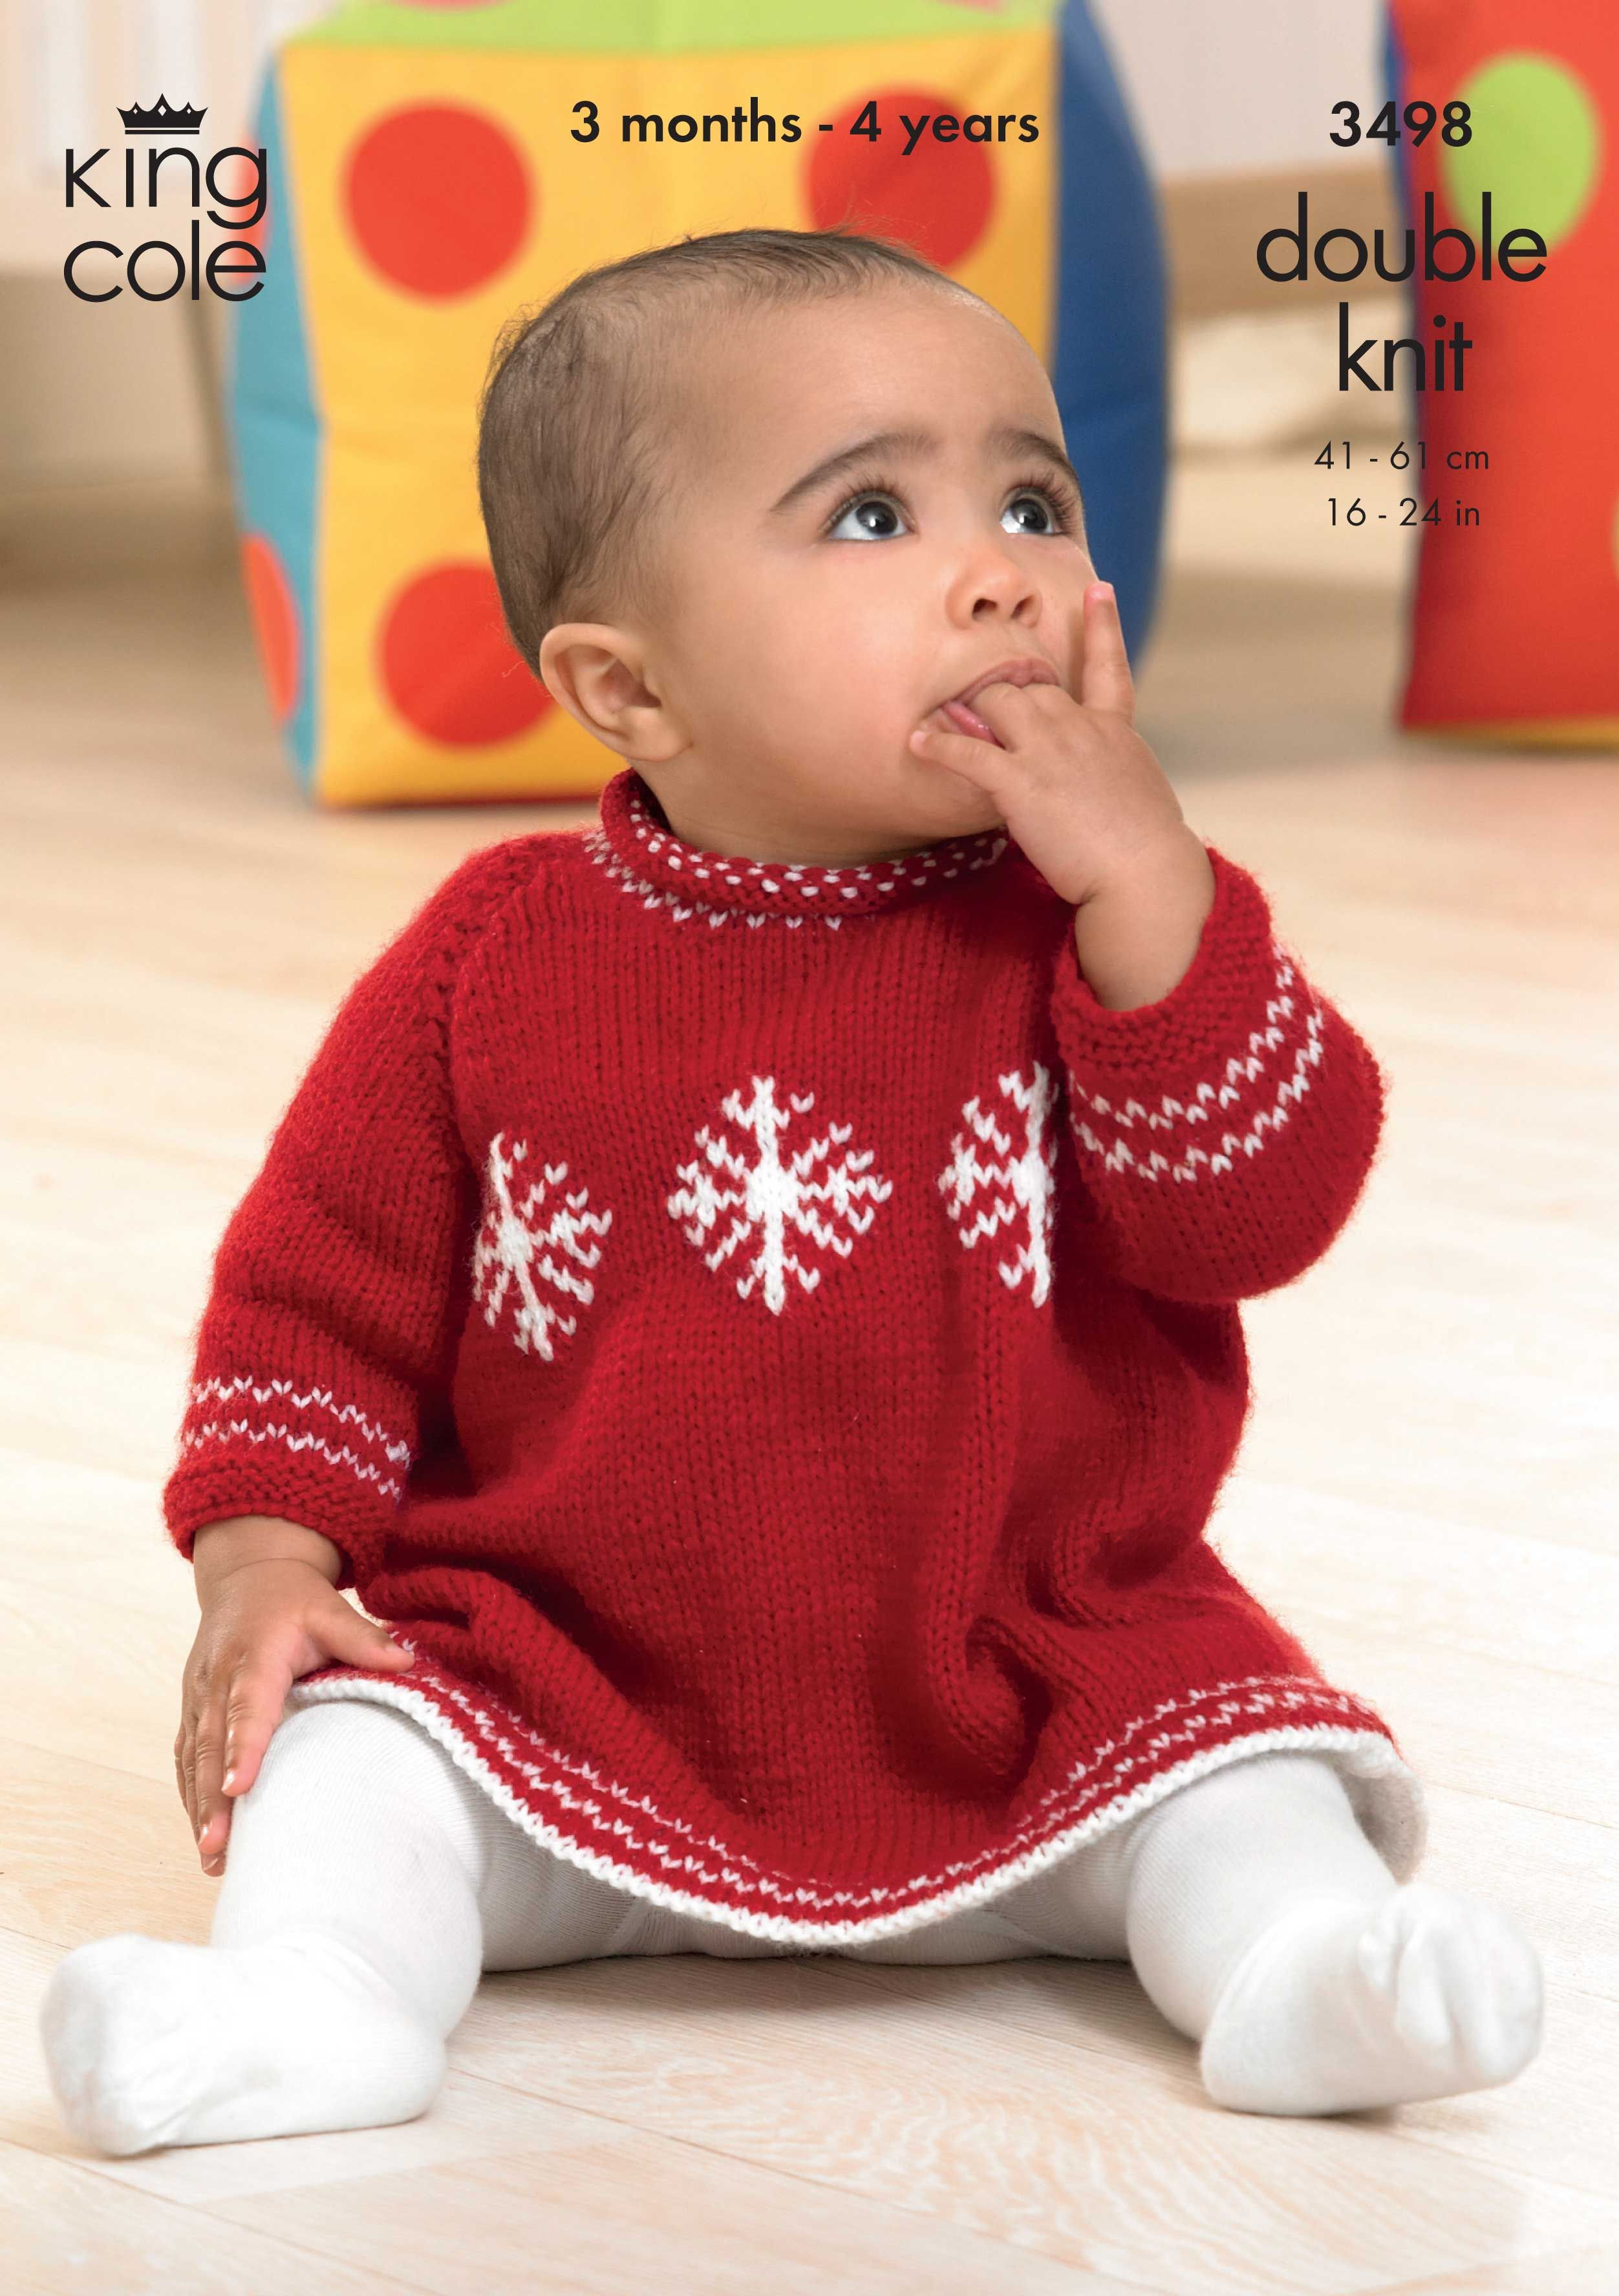 ff574ef2d5f4 Babies knitted Christmas dress Knitted snowflake Dress - King Cole ...